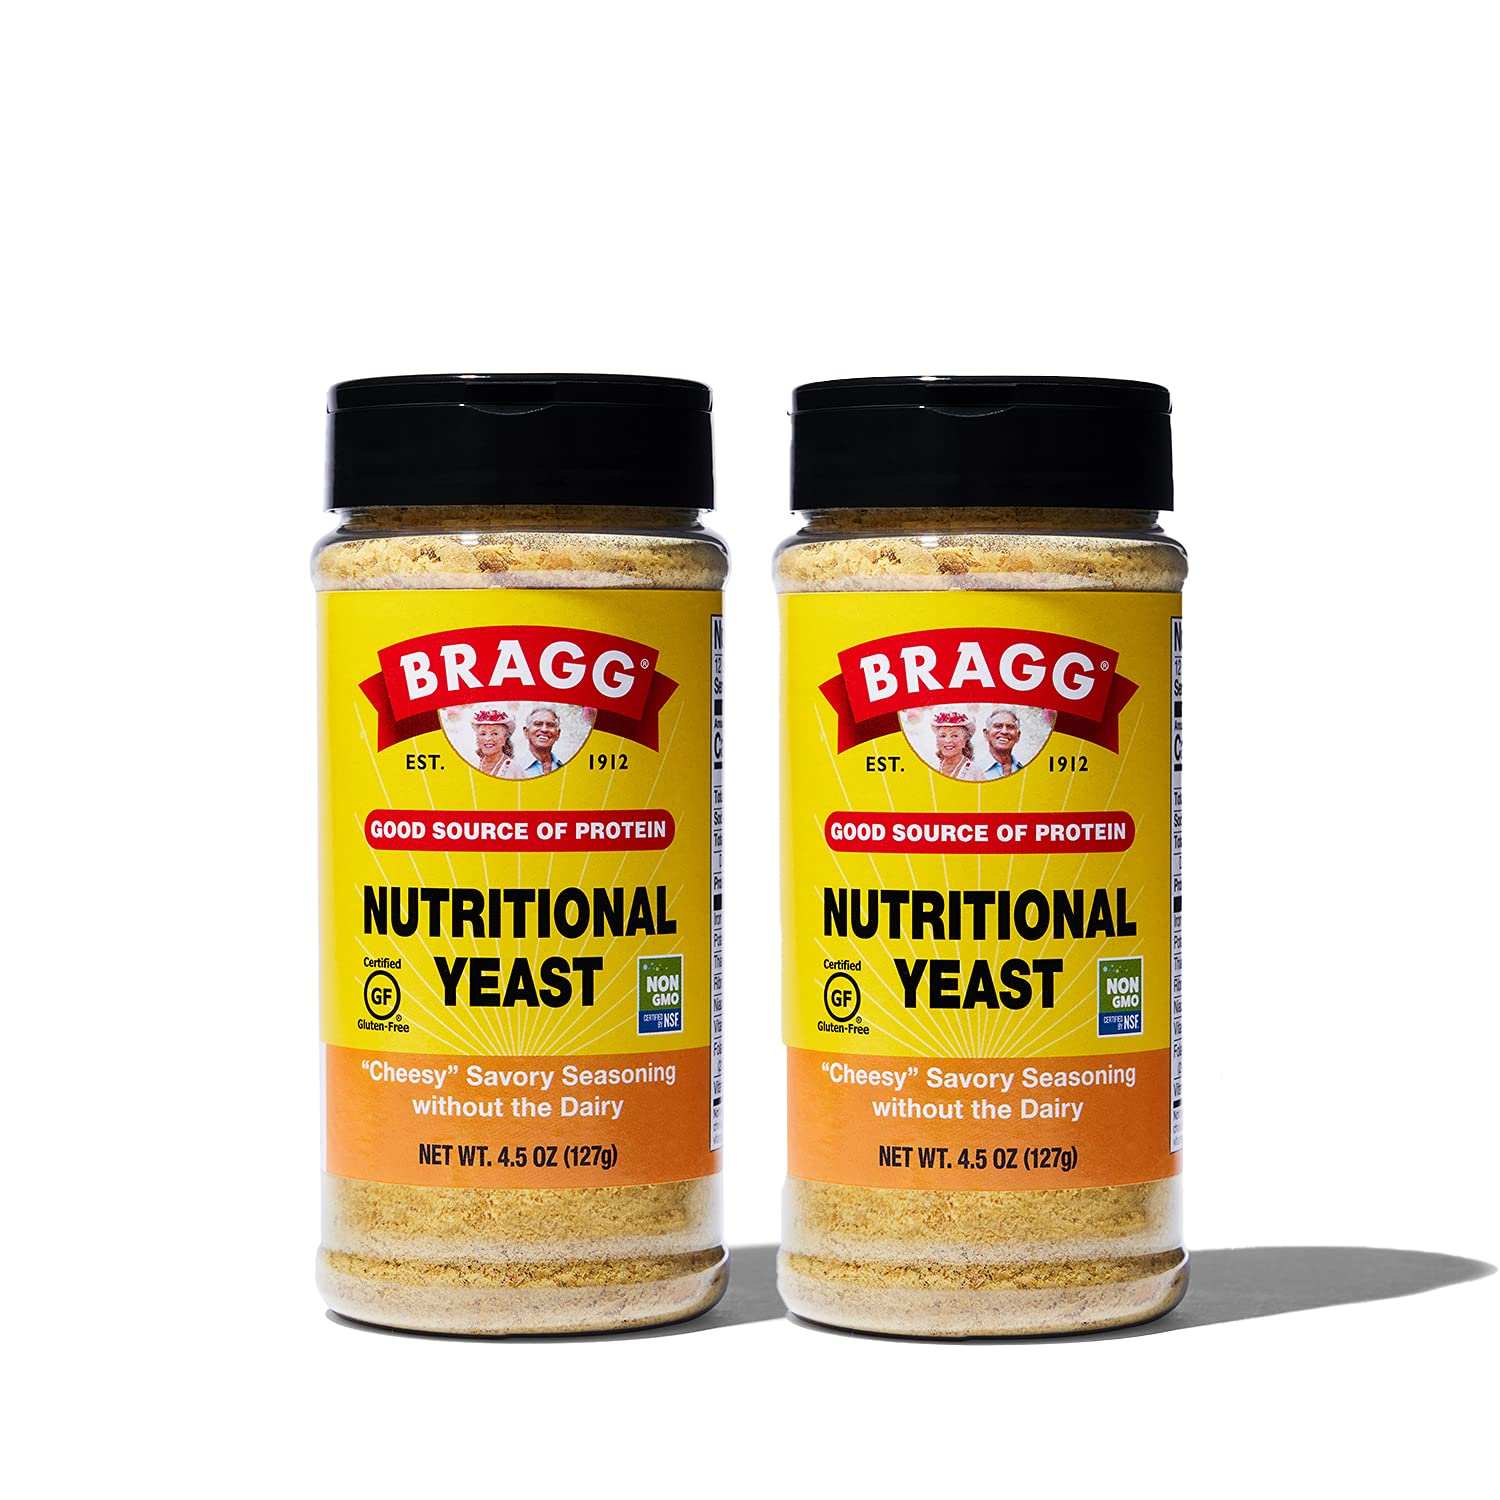 Bragg Nutritional Yeast Seasoning – Vegan, Gluten Free Cheese Flakes – Good Source of Protein & Vitamins – Nutritious Savory Parmesan Cheese Substitute – Non GMO Verified, 4.5 ounce, 2 Pack